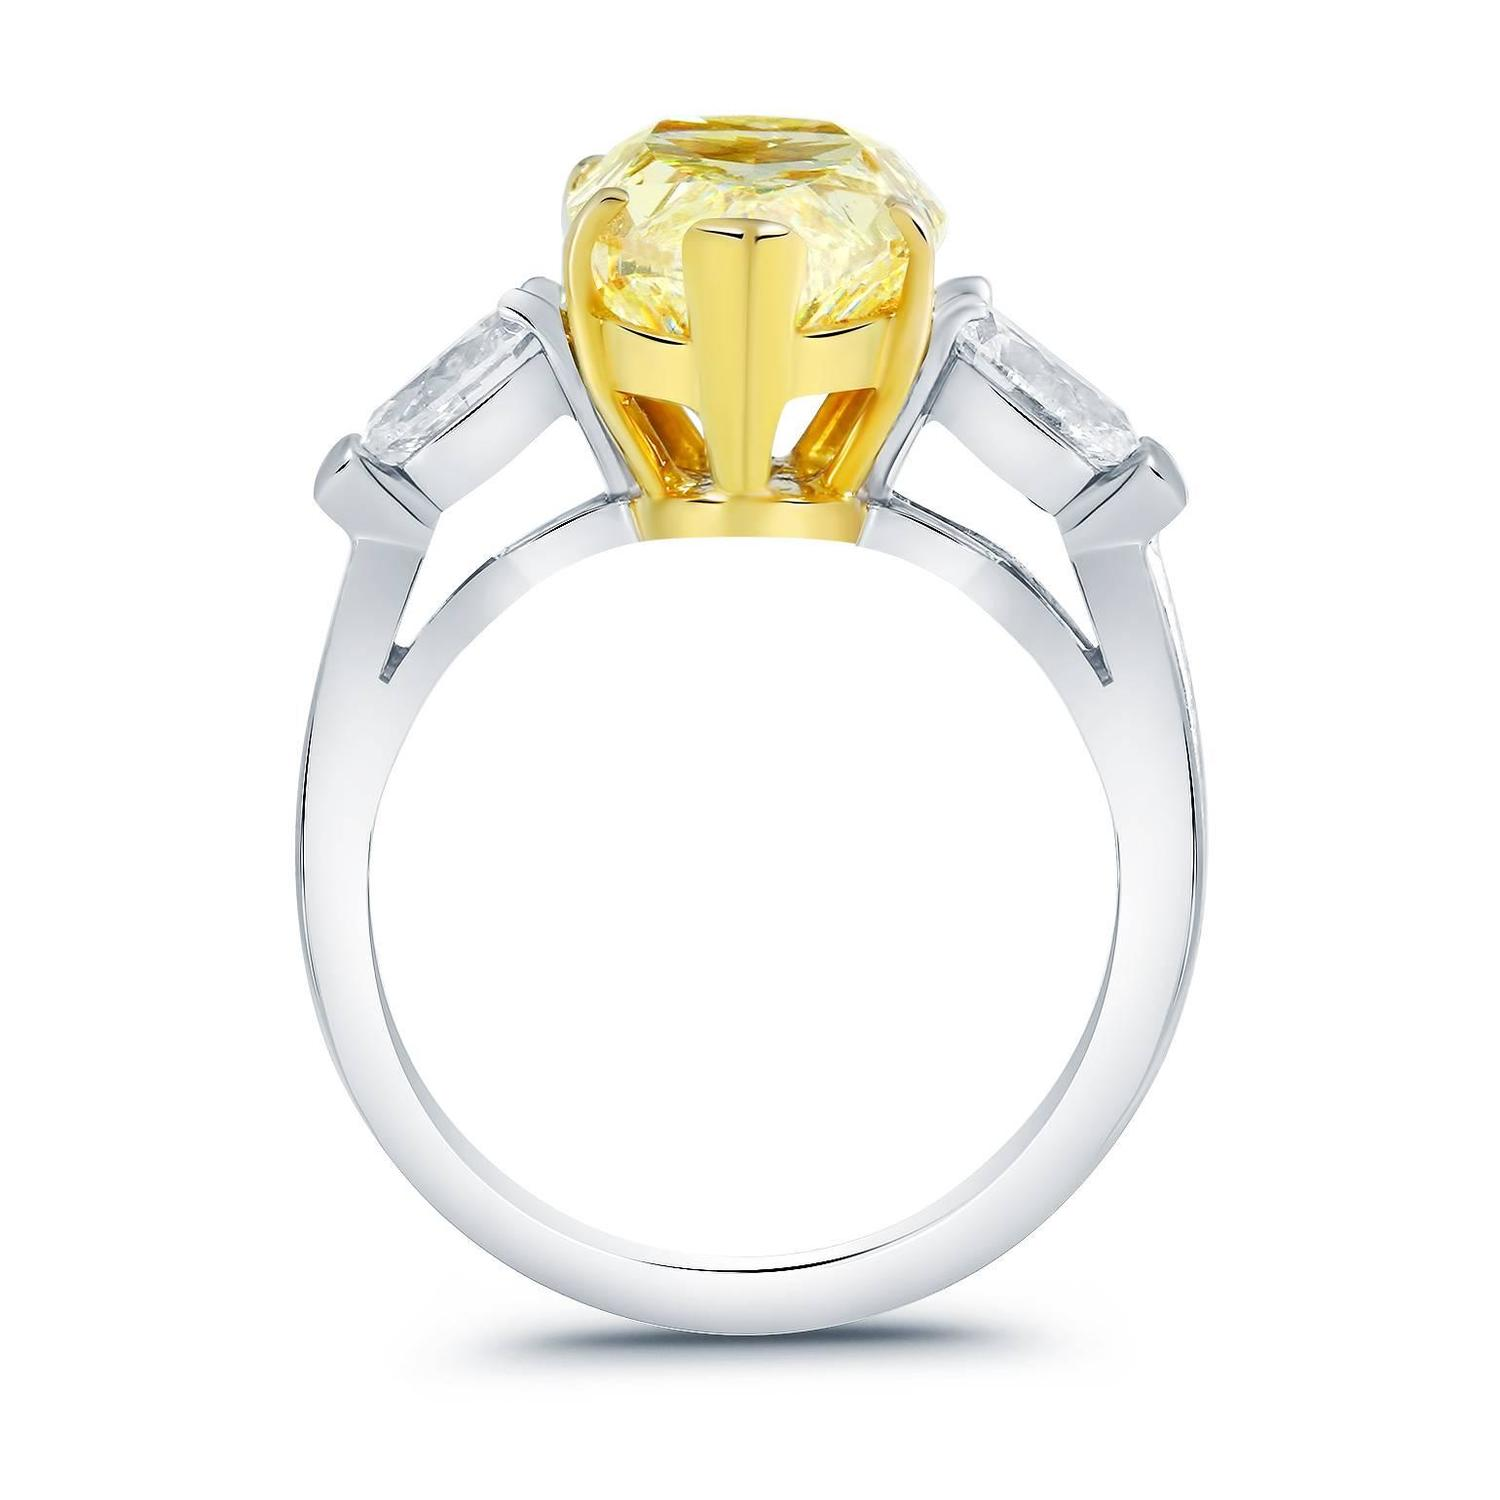 5 93 Carat GIA Cert Three Stone Fancy Yellow Pear Diamond Engagement Ring For